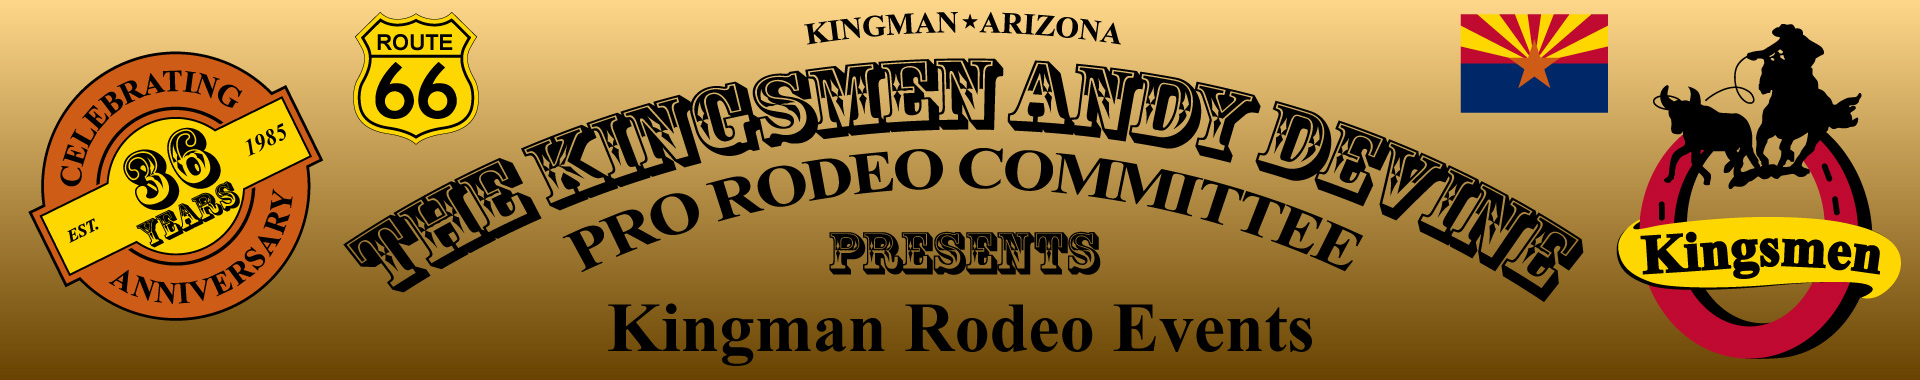 Kingman Rodeo Banner